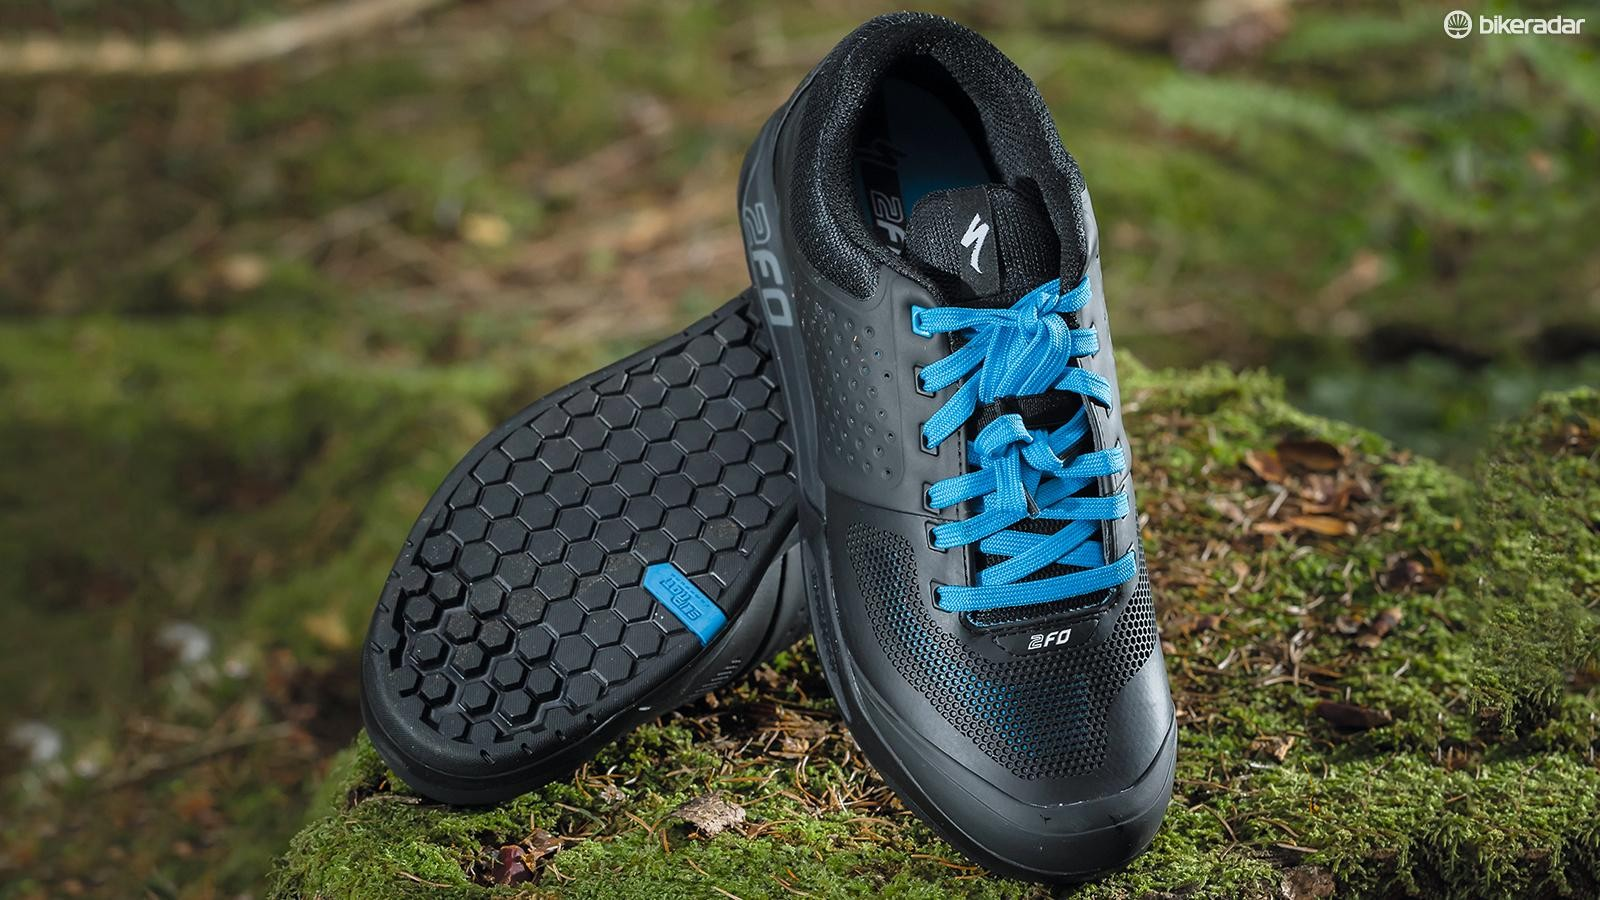 Specialized's 2FO shoes have a very rigid feel and are perhaps a little too well ventilated